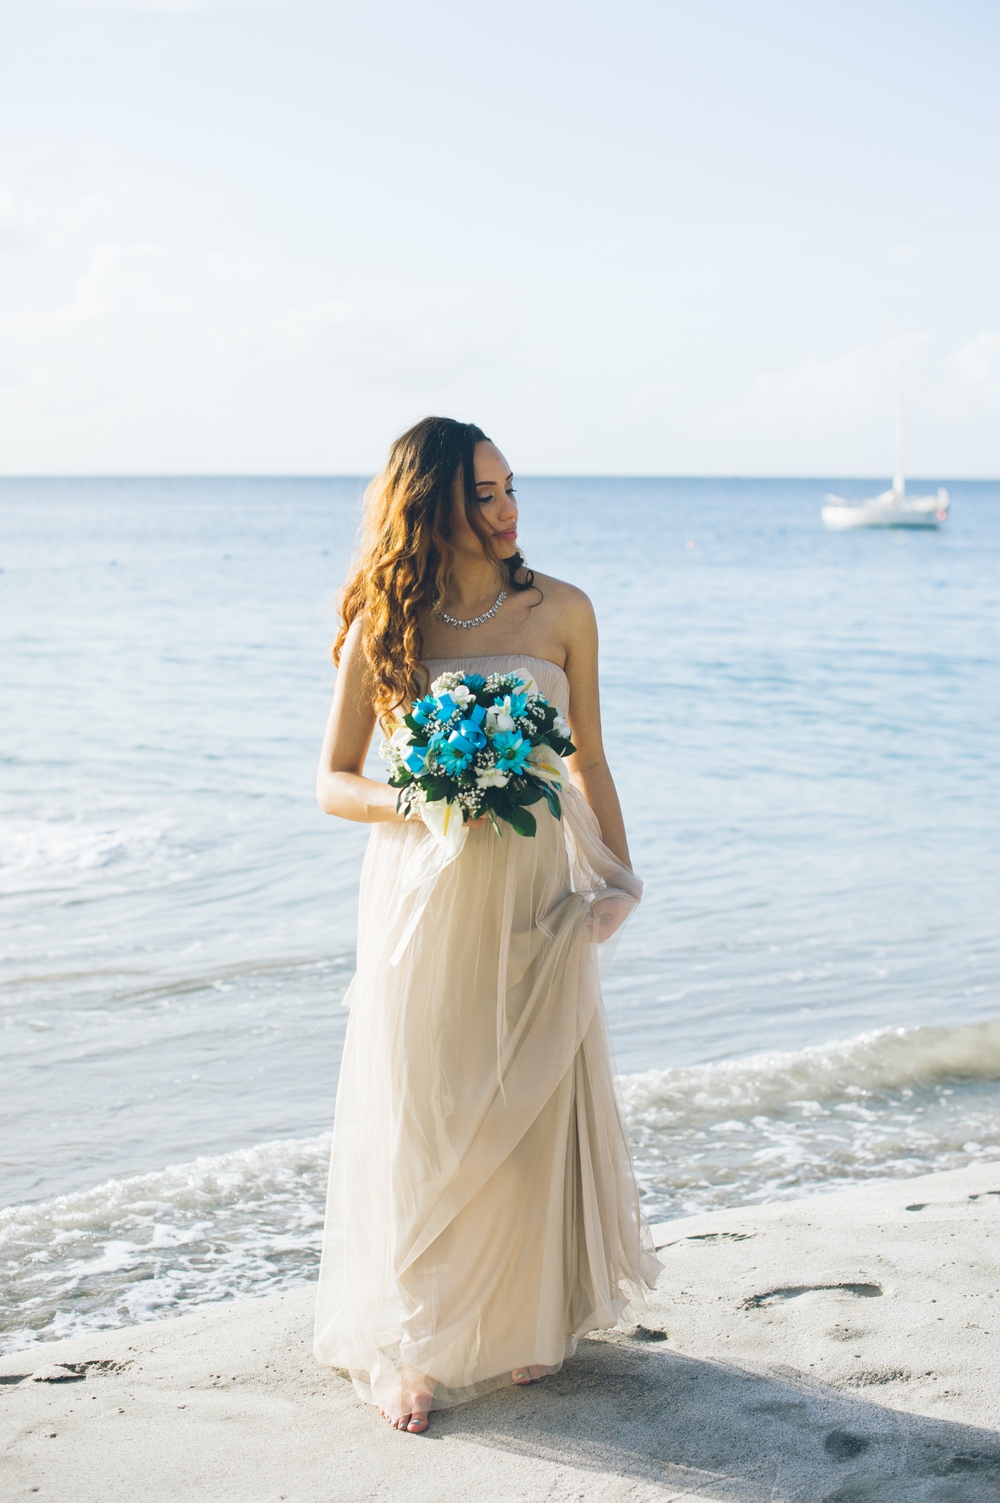 St Lucia Destination Wedding26.jpg